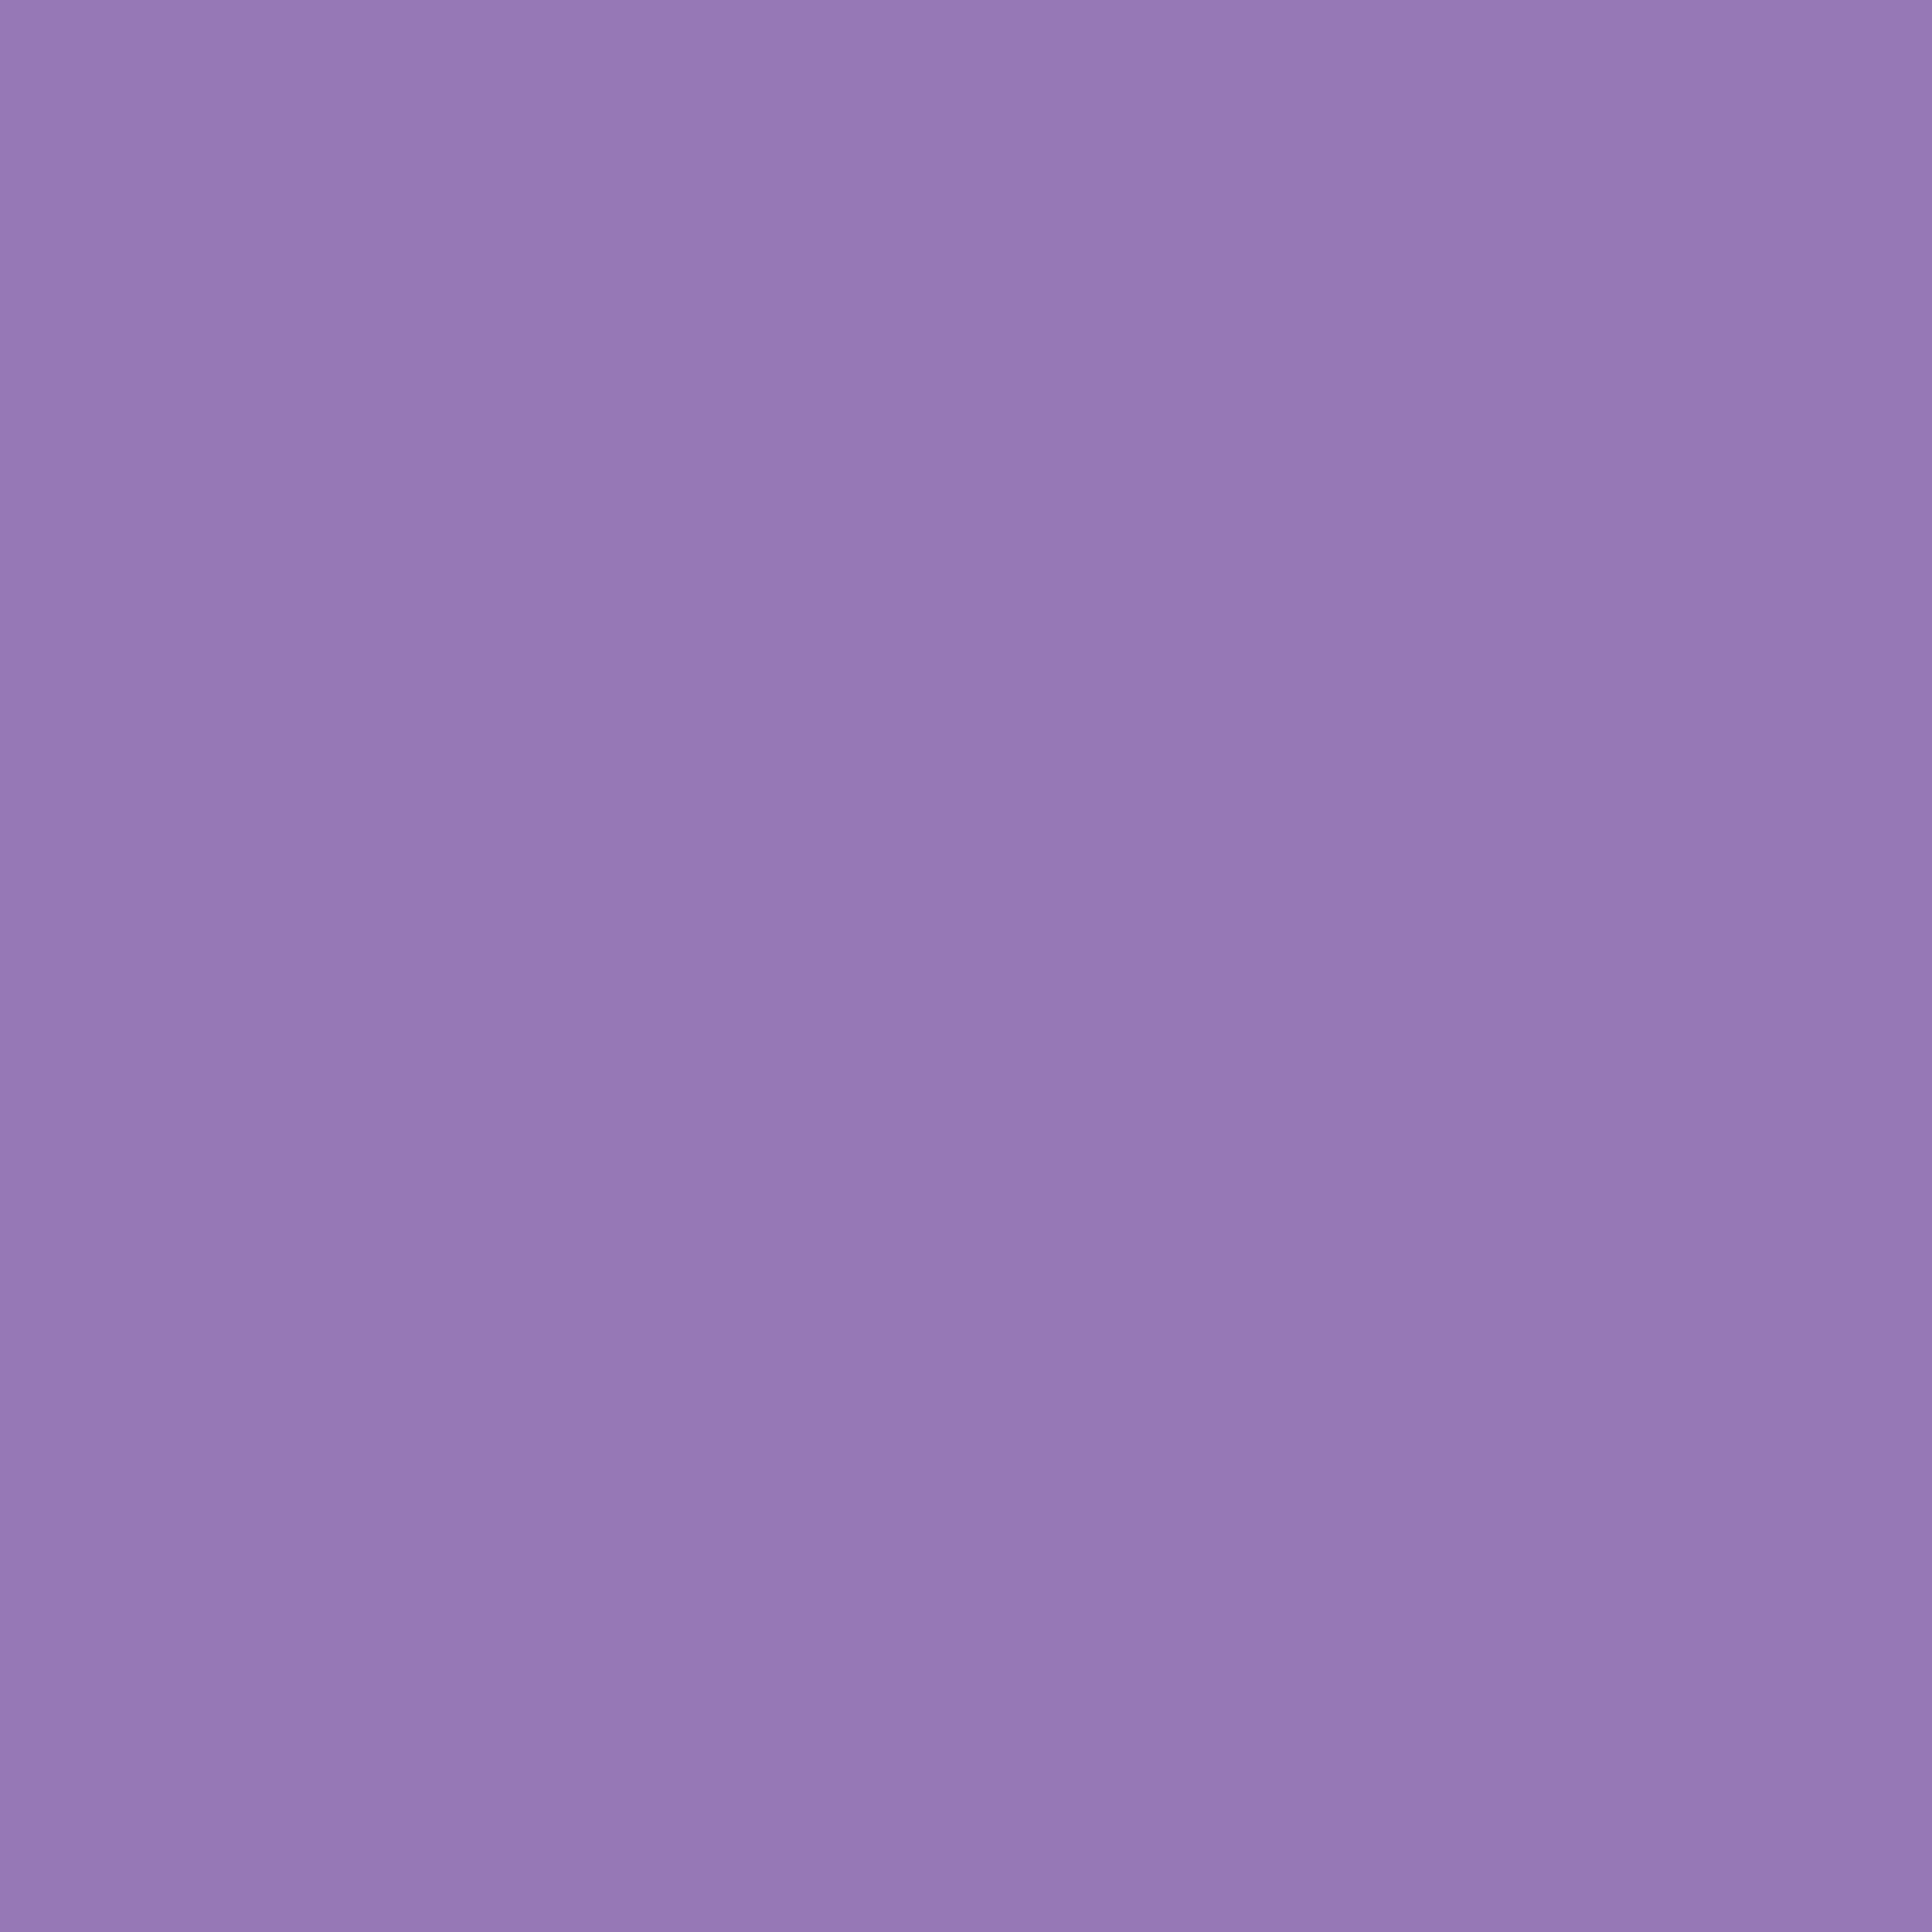 2732x2732 Purple Mountain Majesty Solid Color Background